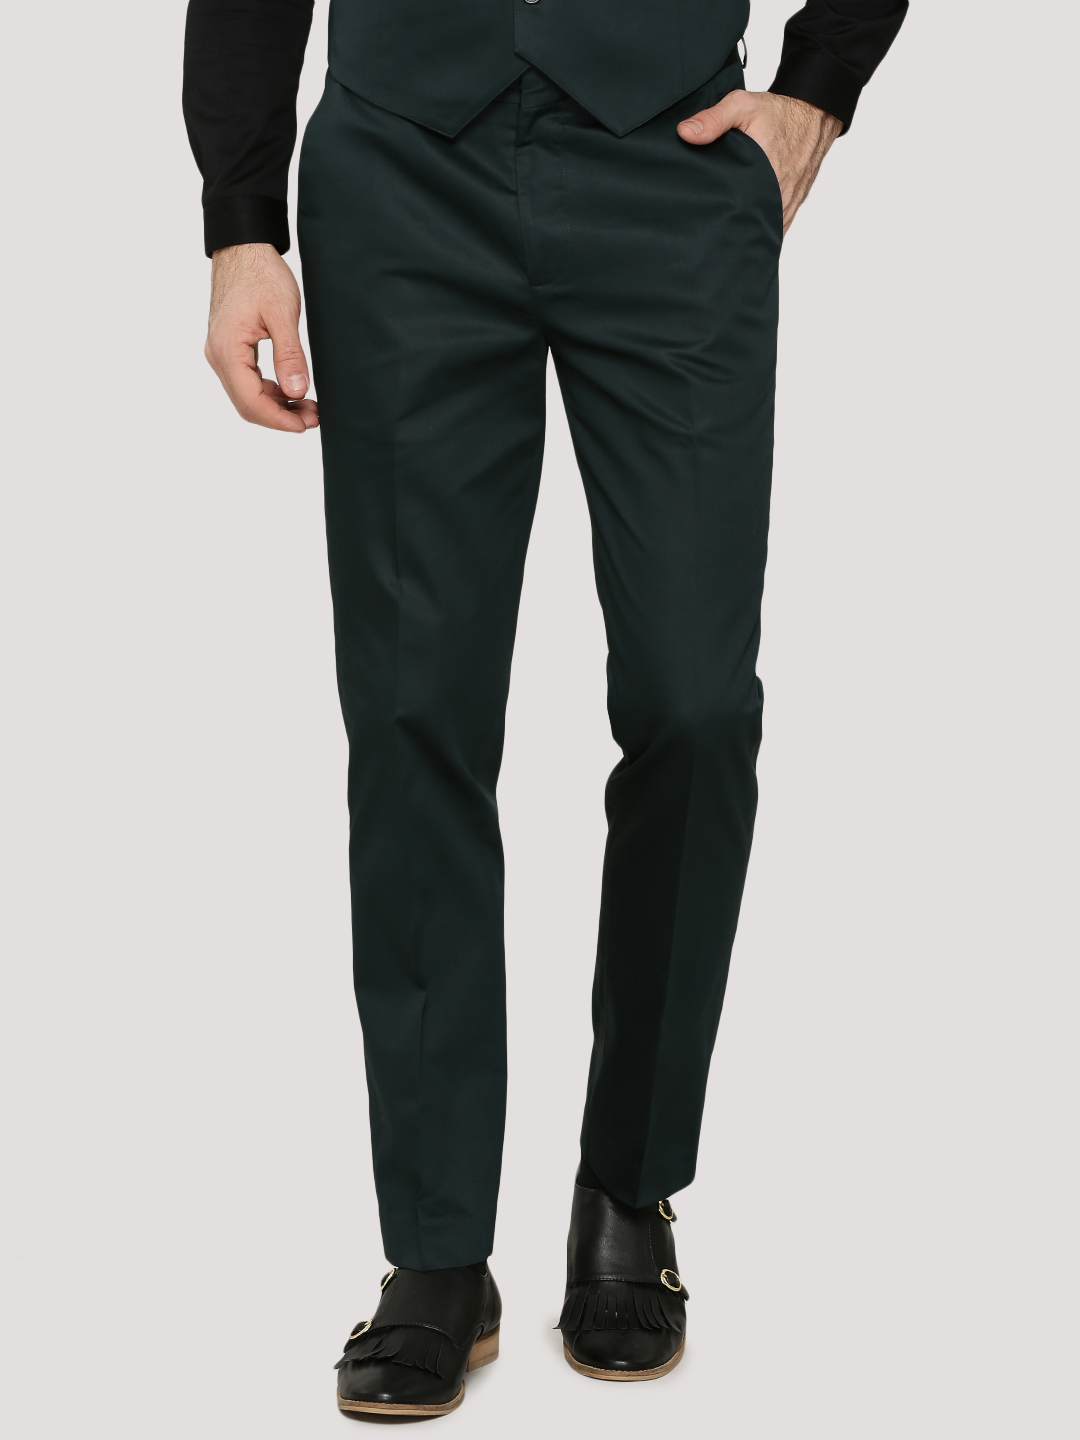 KOOVS Three Piece Suit Trouser...